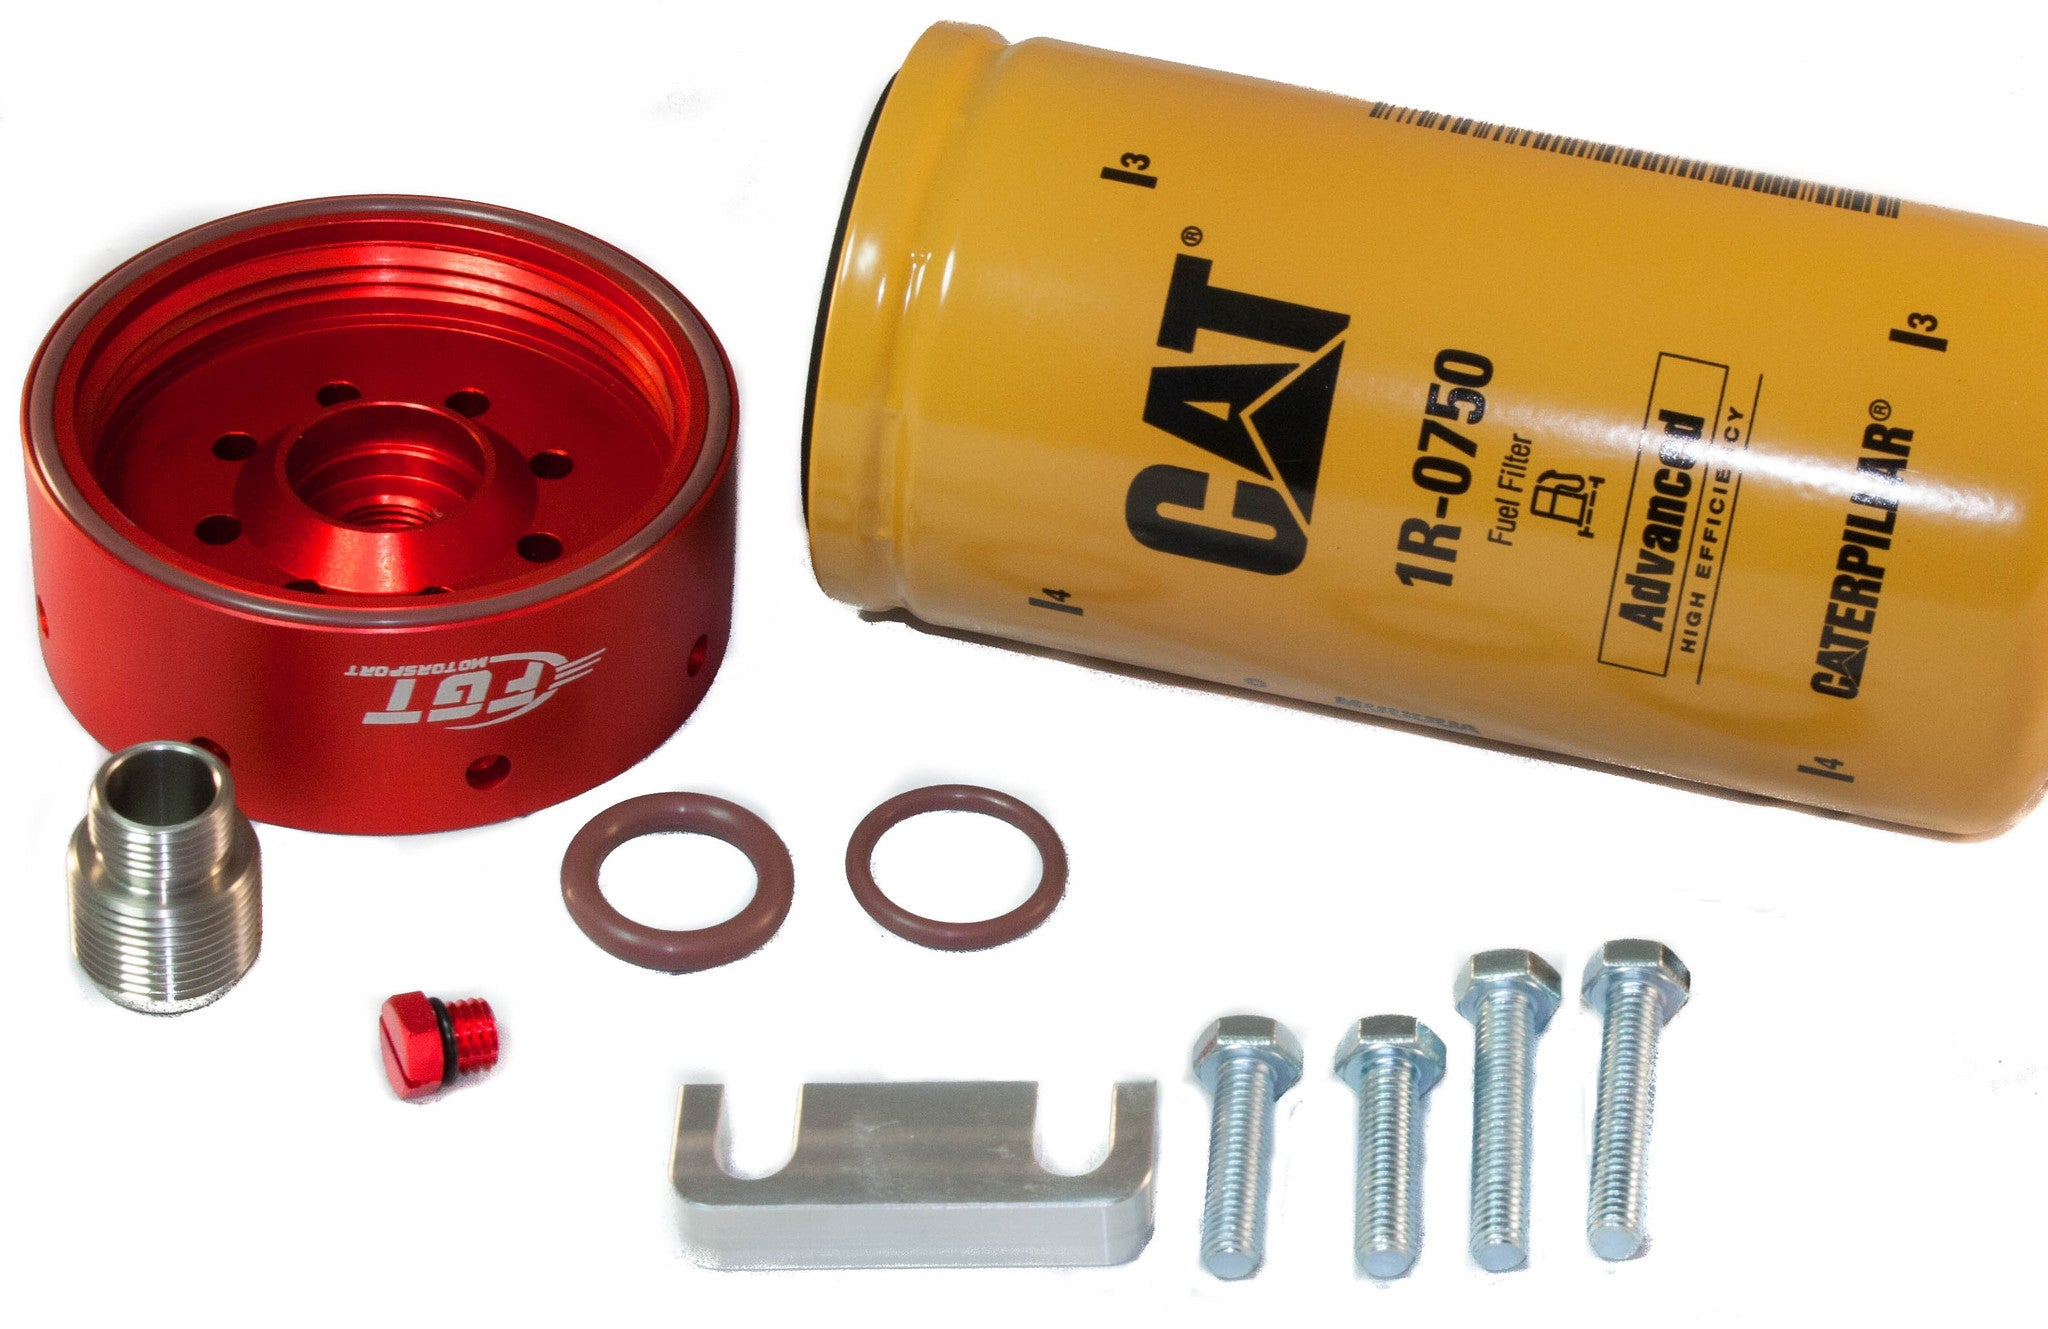 Add On Kit For Duramax Fuel Filter Wiring Diagram Housing Repair Fgt Cat Adapter With 1r 0750 Spacerduramax